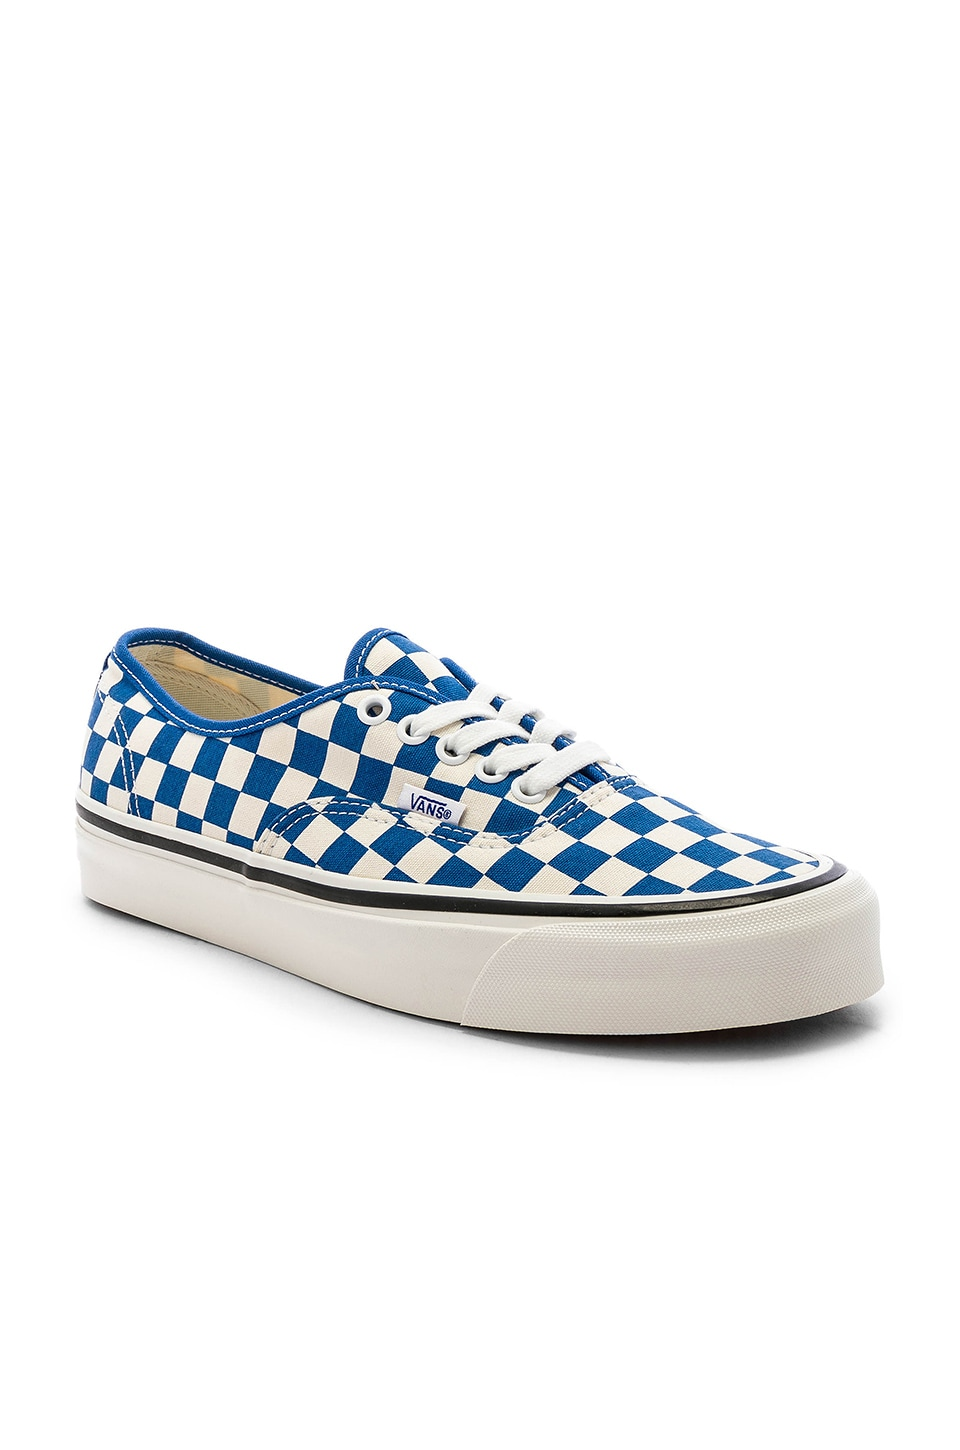 Vans ZAPATILLA DEPORTIVA AUTHENTIC